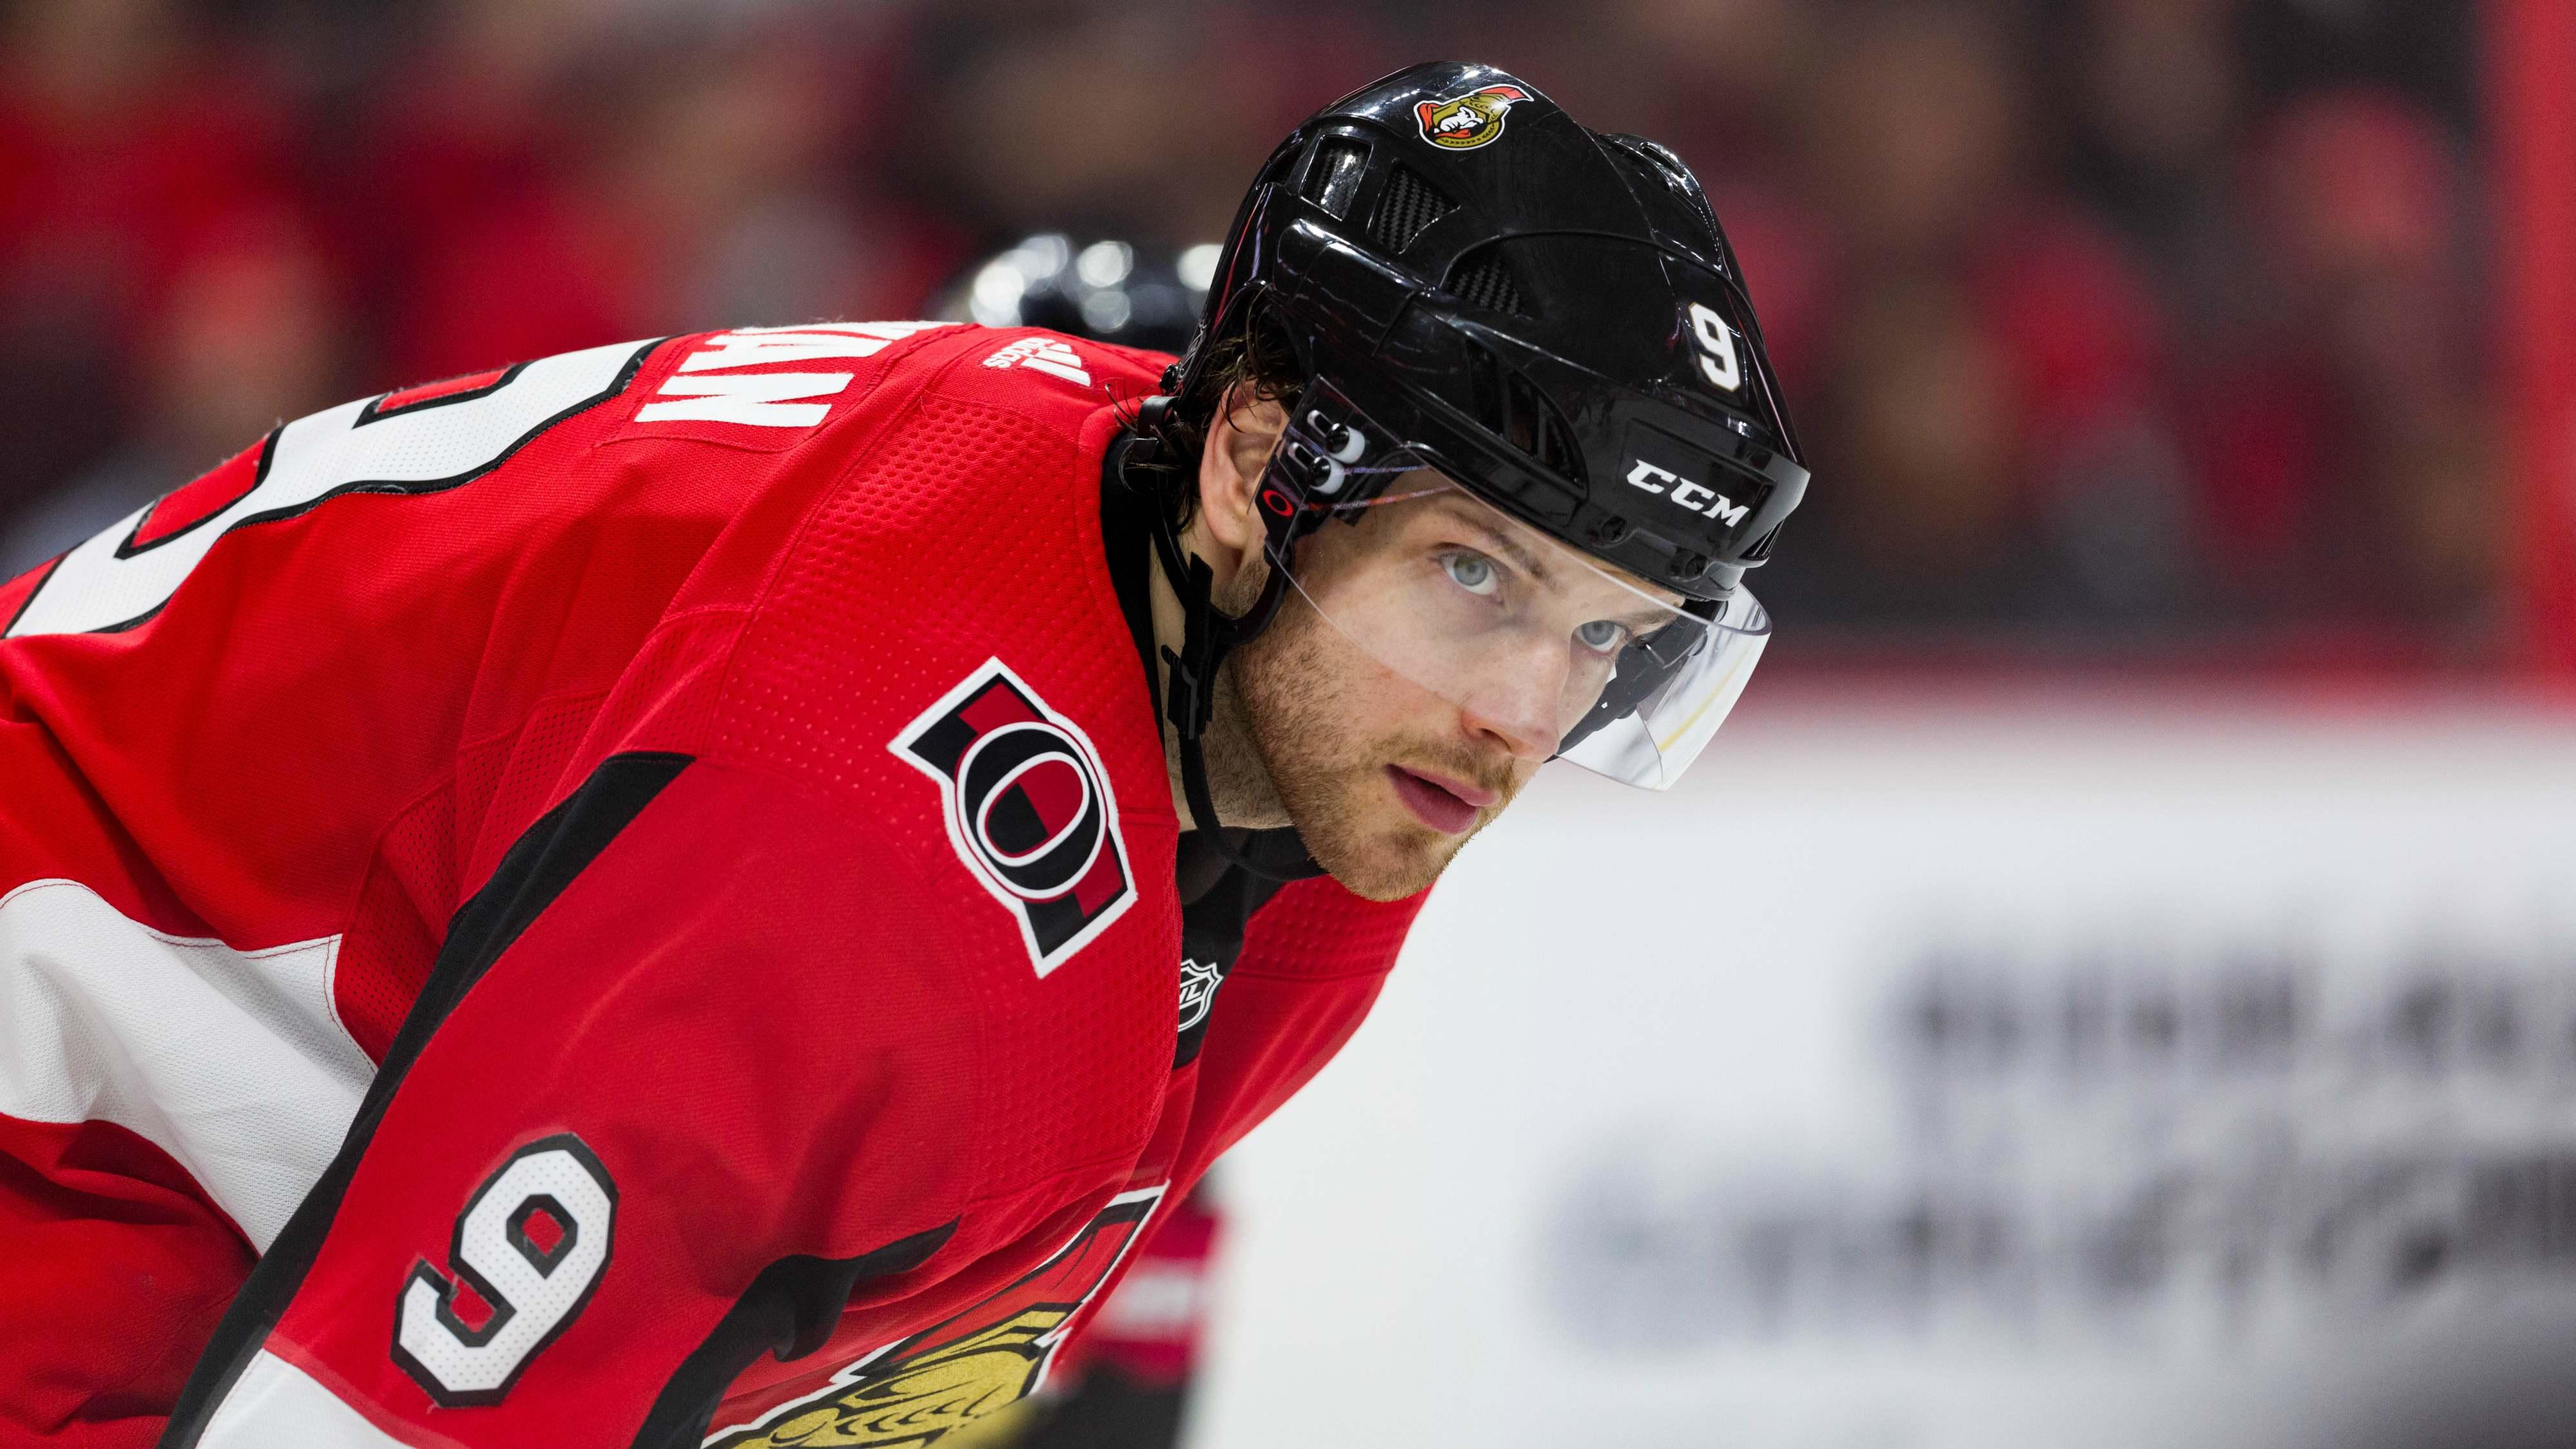 Senators Bobby Ryan Scores Hat Trick In First Home Game Since